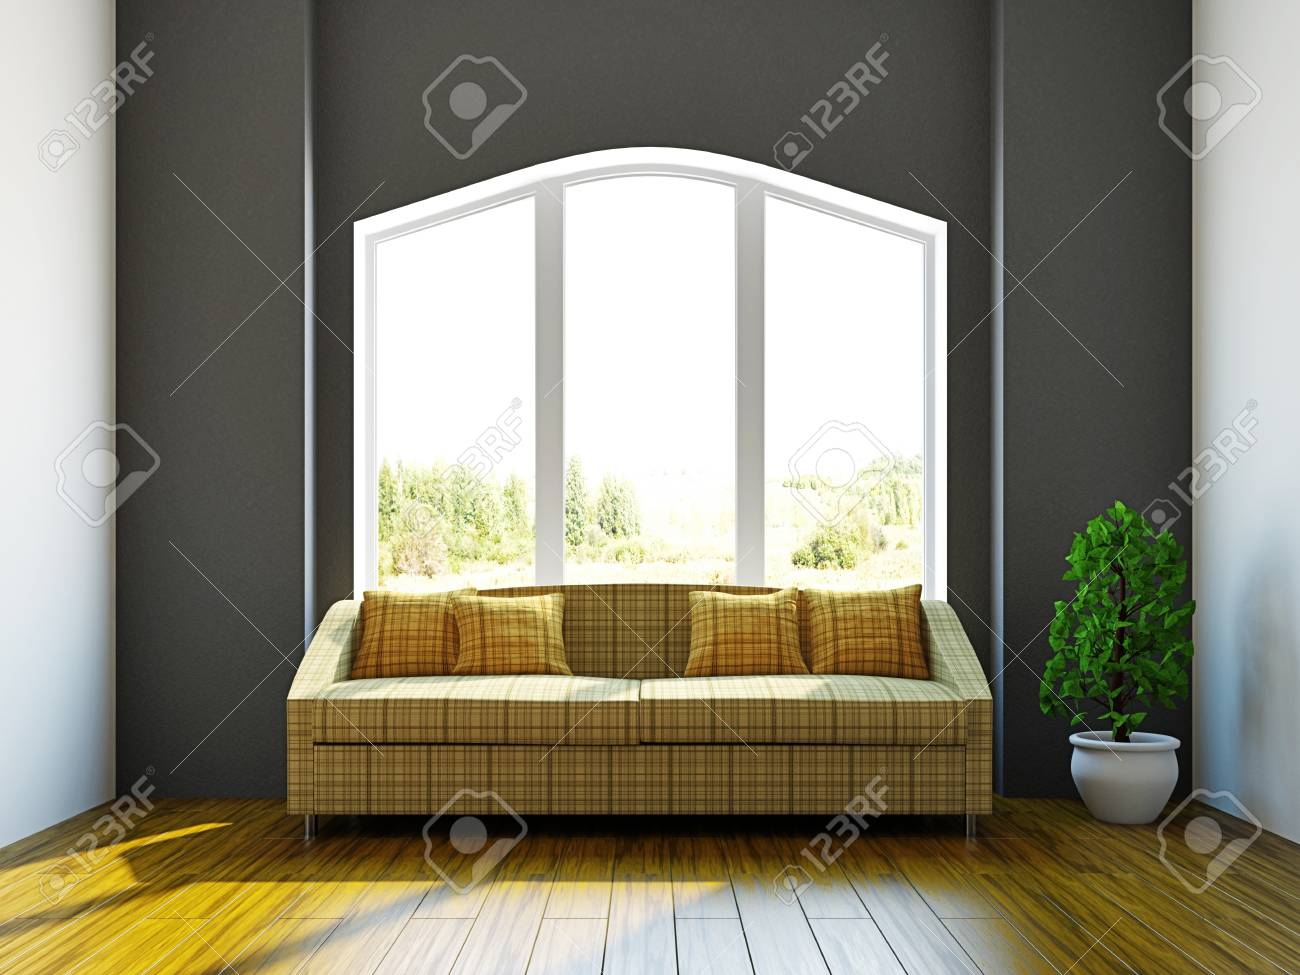 Room with sofa and a plant near the window Stock Photo - 17454499